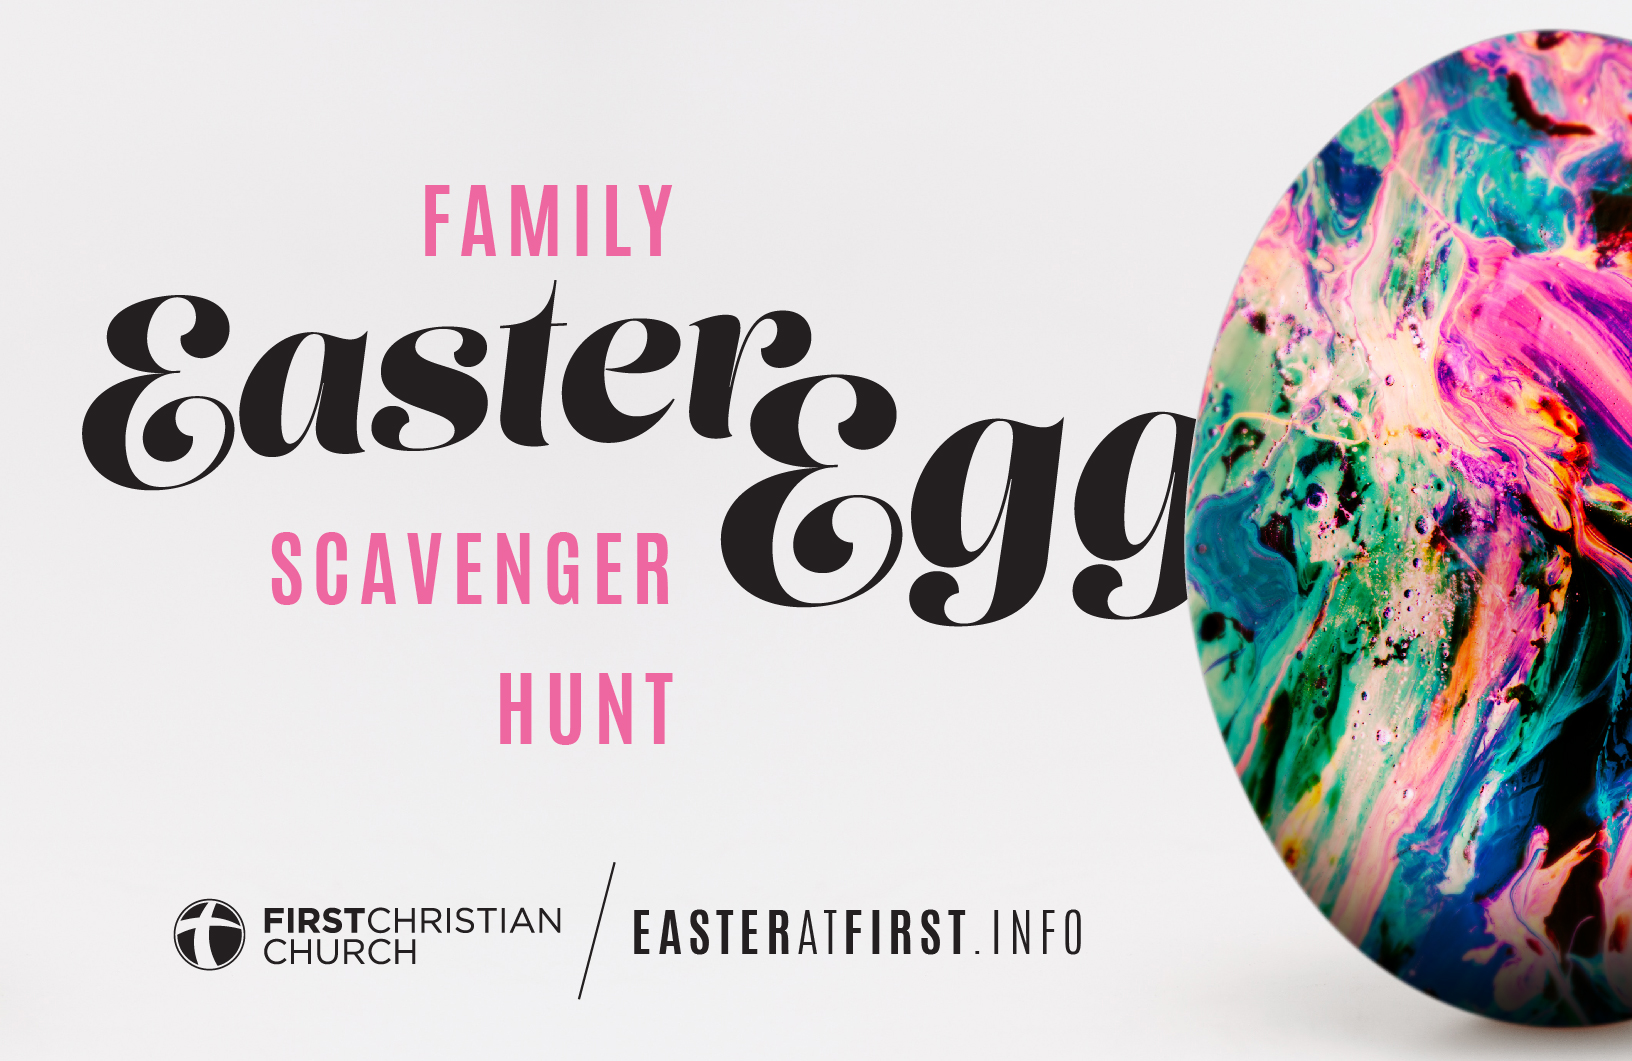 first_christian_church_champaign_urbana_easter_egg_hunt-03.jpg